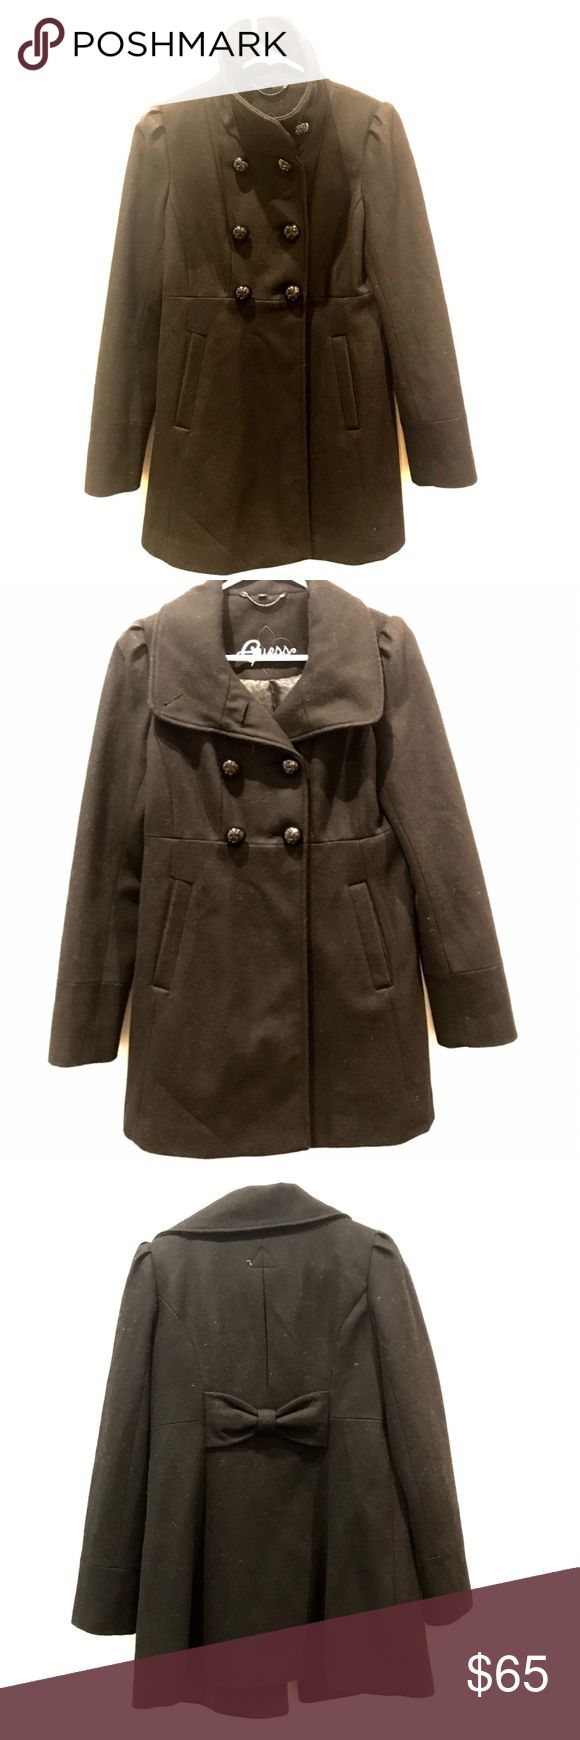 Guess woman's size small black pea coat Cute dressy black pea coat with large buttons, high collar, and a bow in the back. Love this but have only worn it a handful of times- looks great with little signs of wear! Guess Jackets & Coats Pea Coats